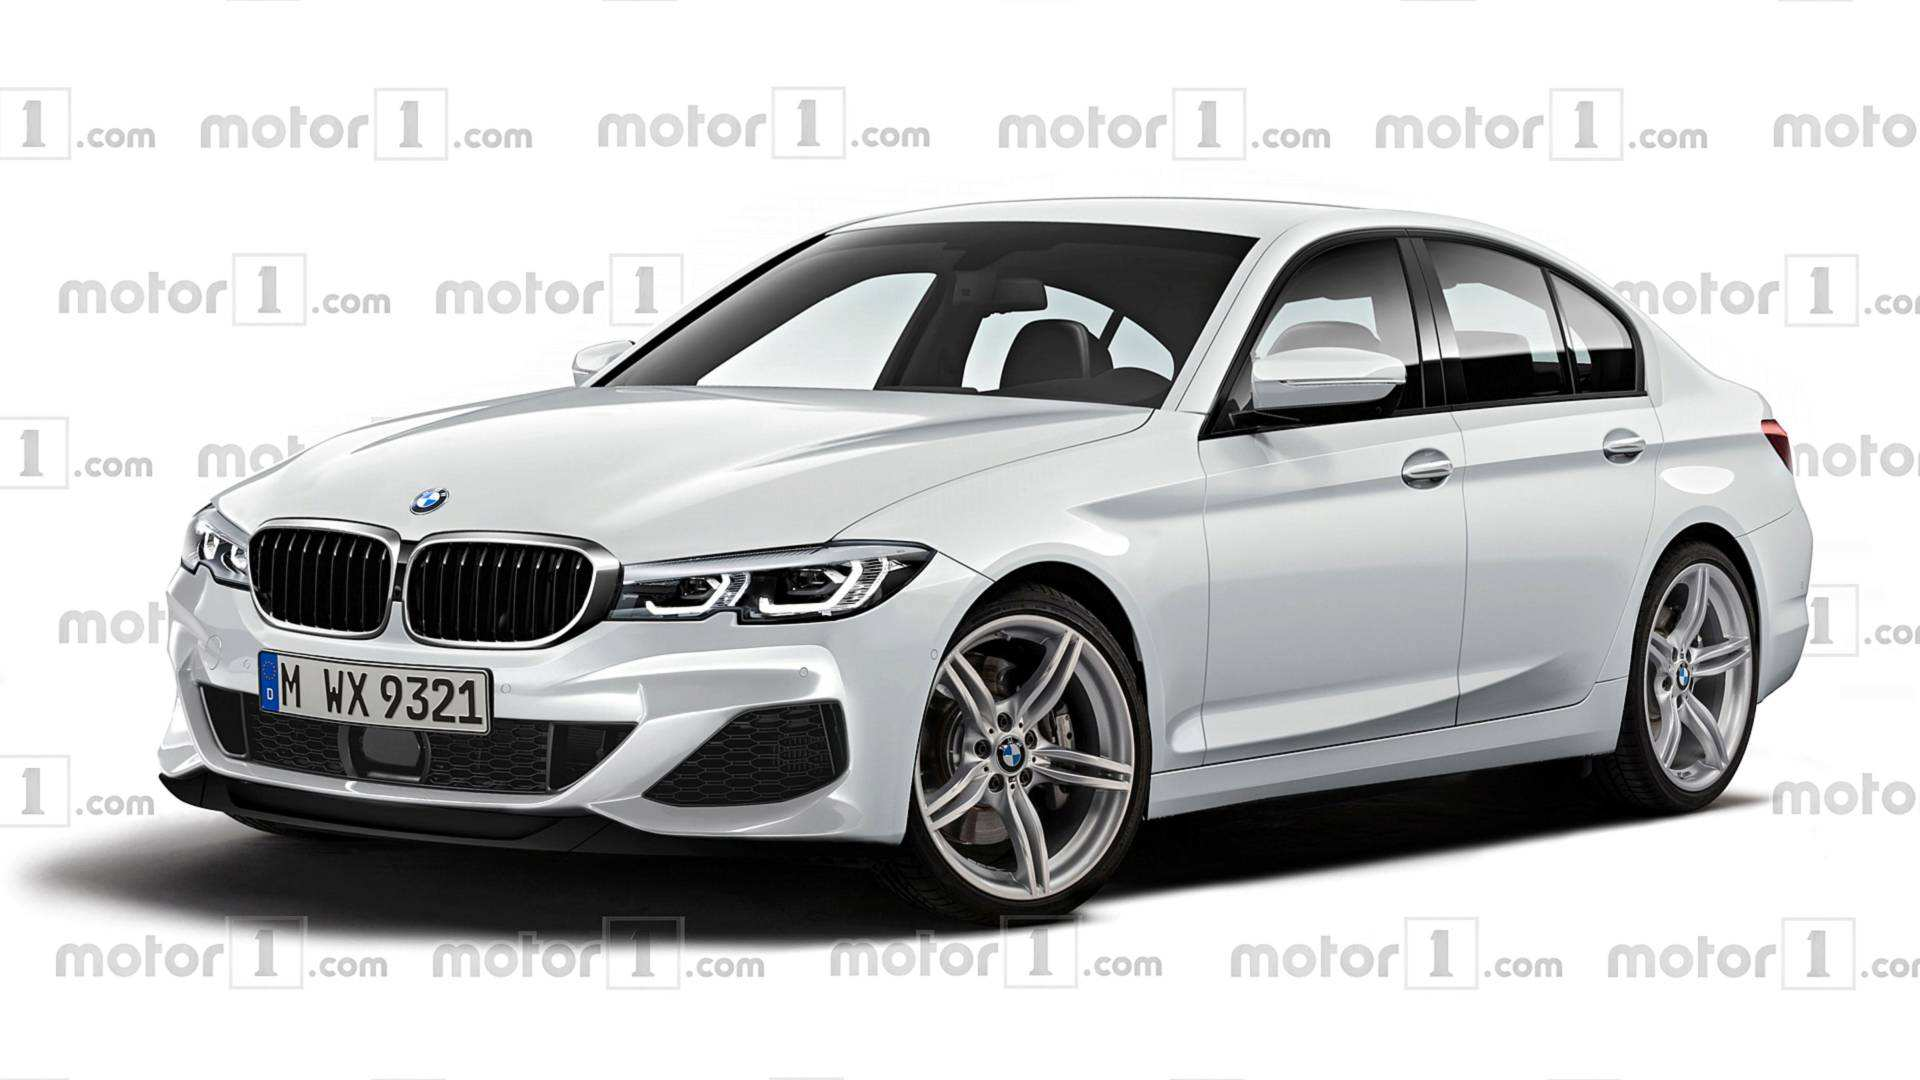 72 New 2019 Bmw Sedan History for 2019 Bmw Sedan